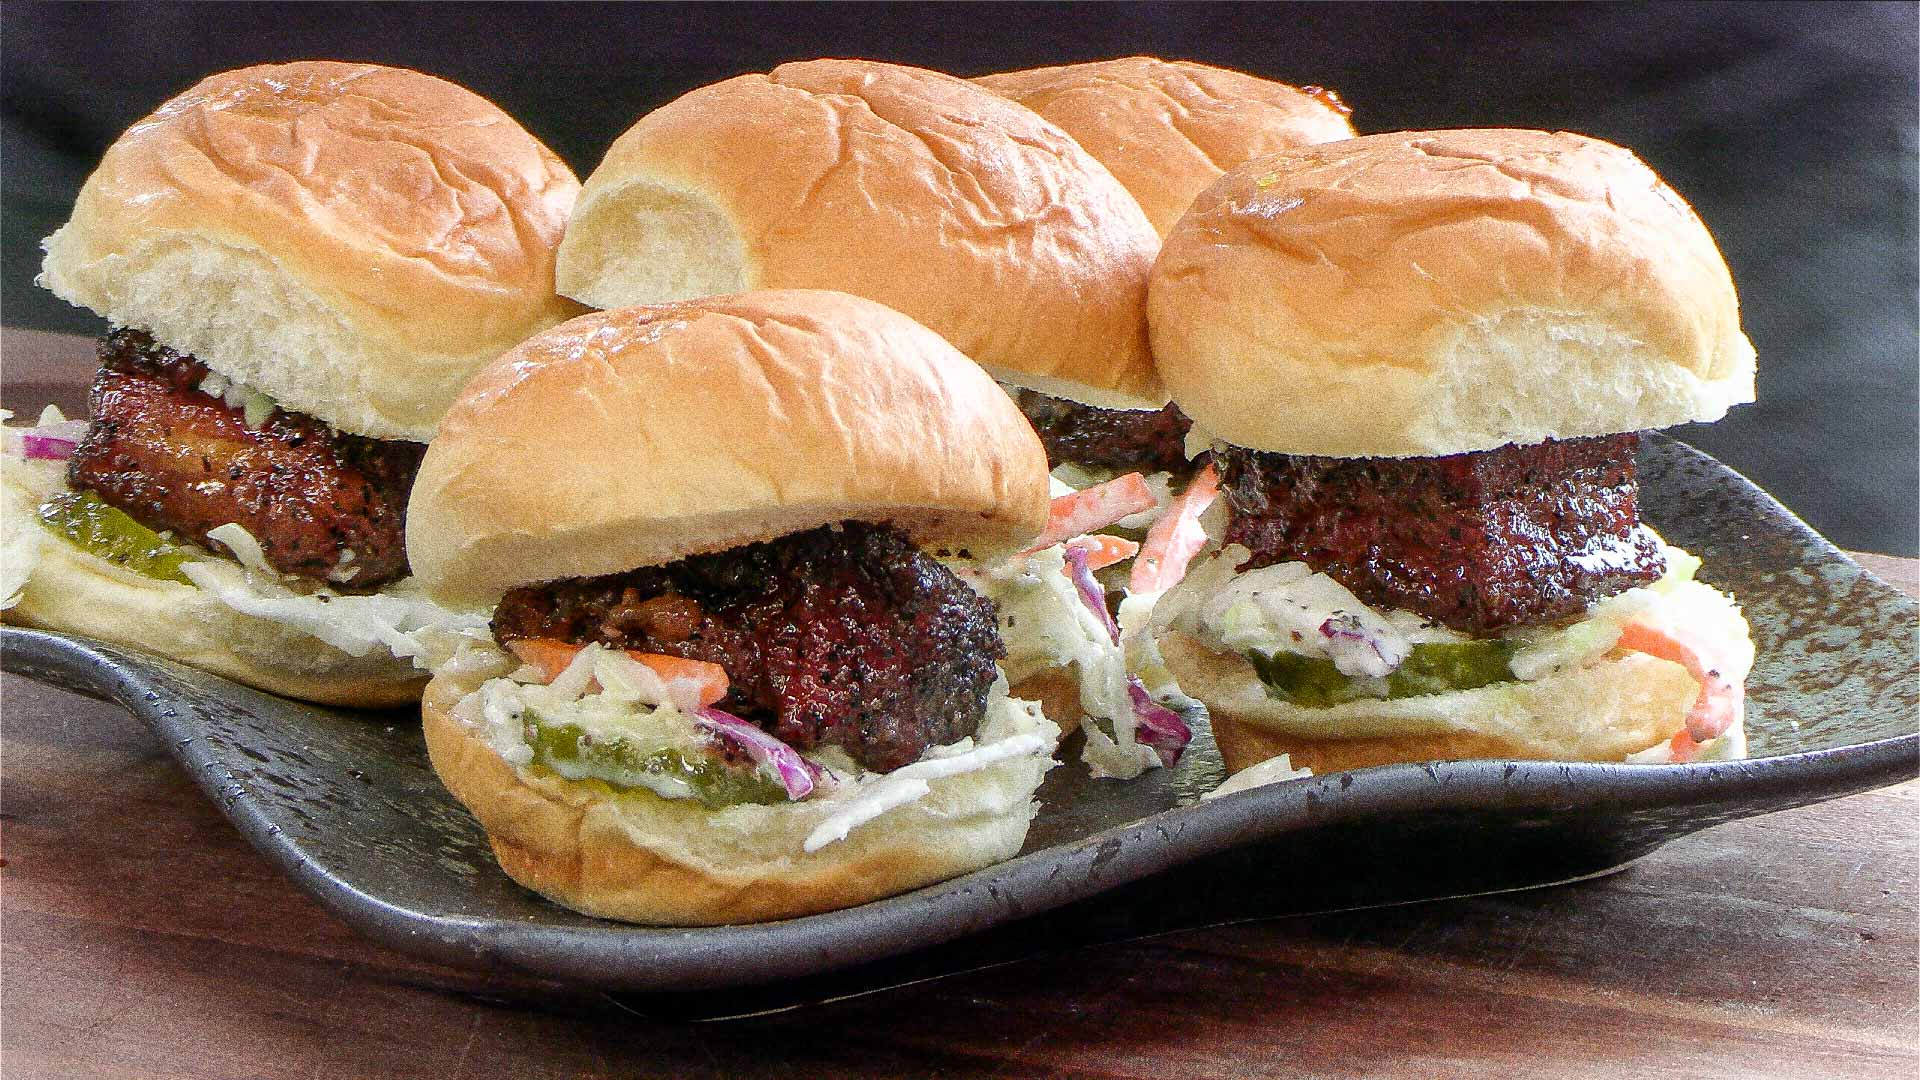 Sweet savory pork belly sliders with a touch of heat.